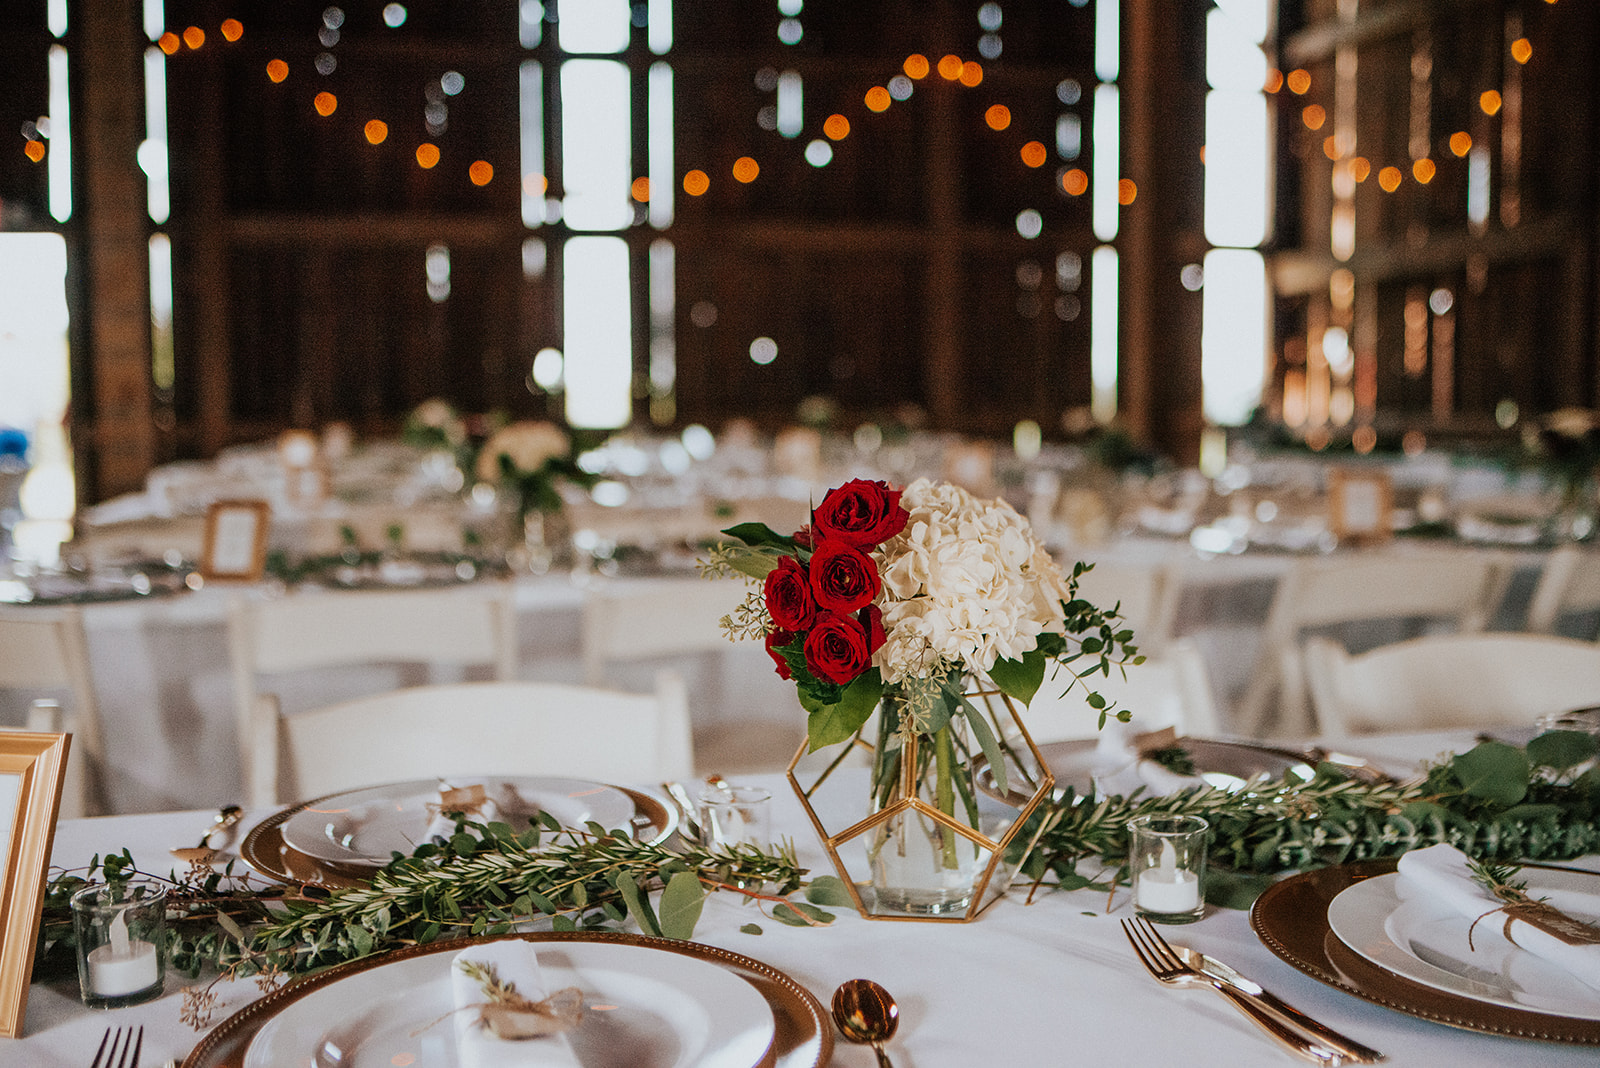 overthevineswisconsinwedding_1083.jpg